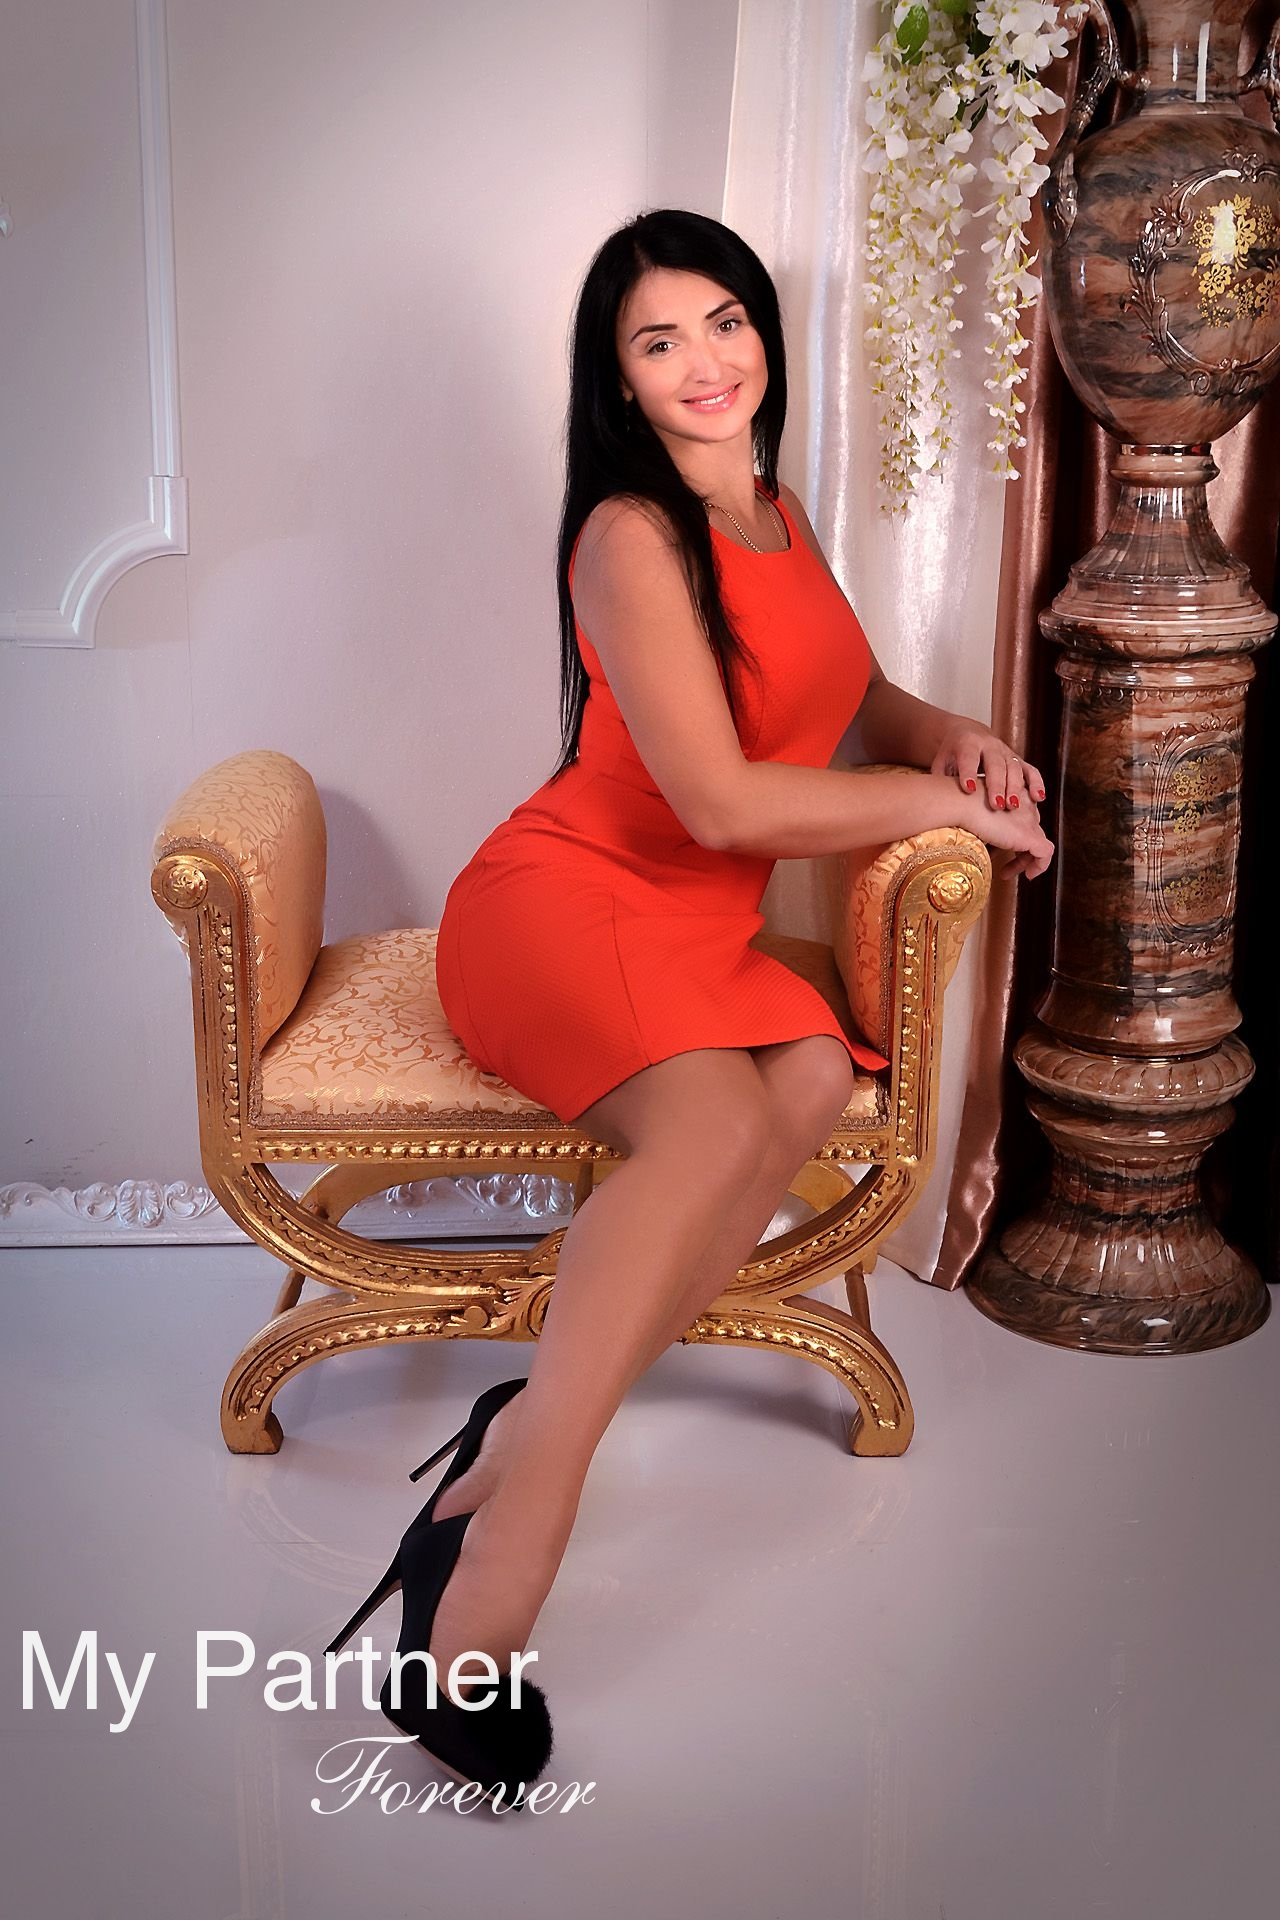 Ukrainian Girl Looking for Marriage - Larisa from Kharkov, Ukraine